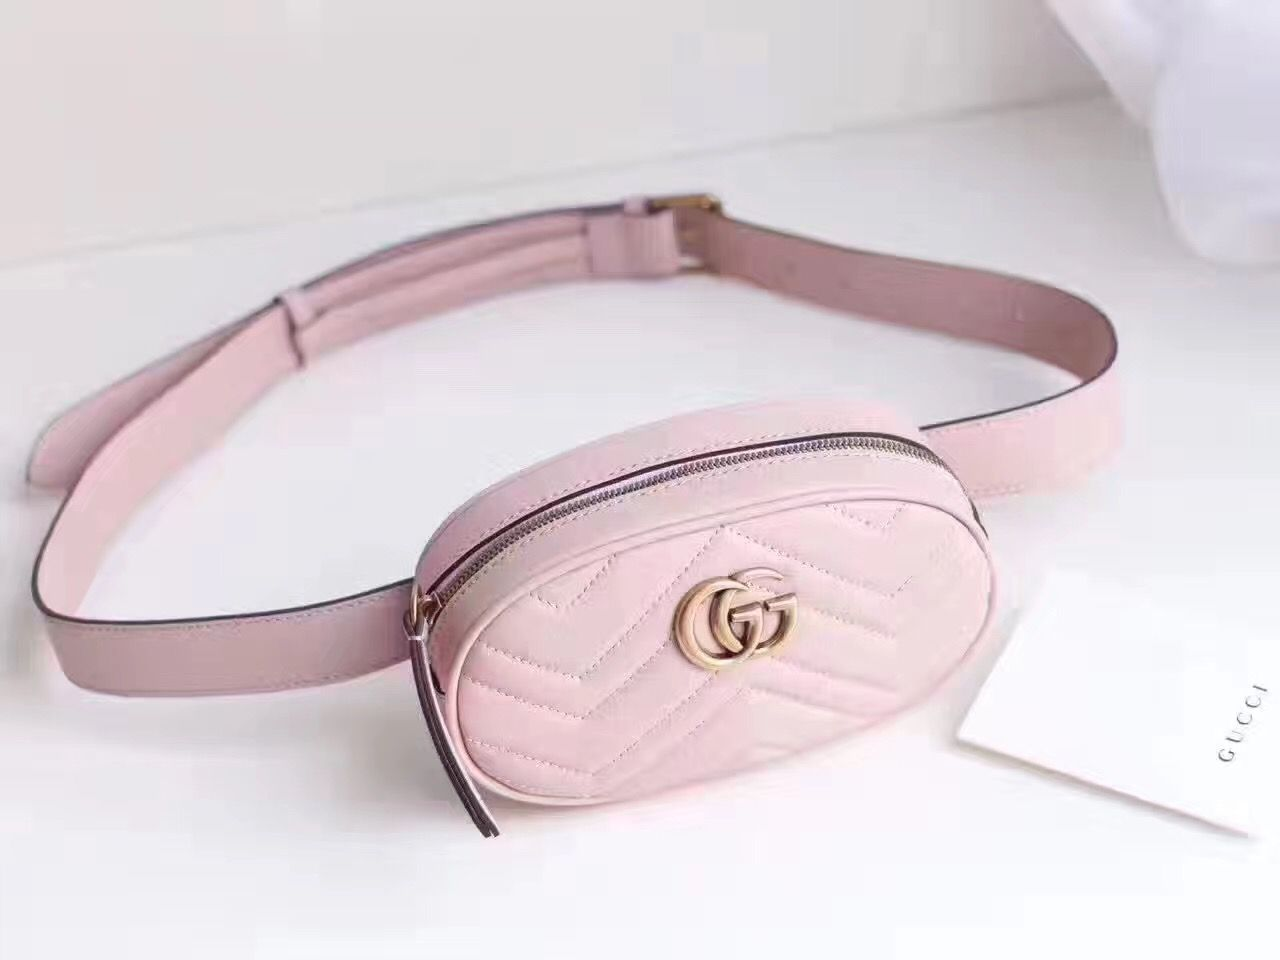 e17d26c6360 Gucci woman marmont waist bag original leather